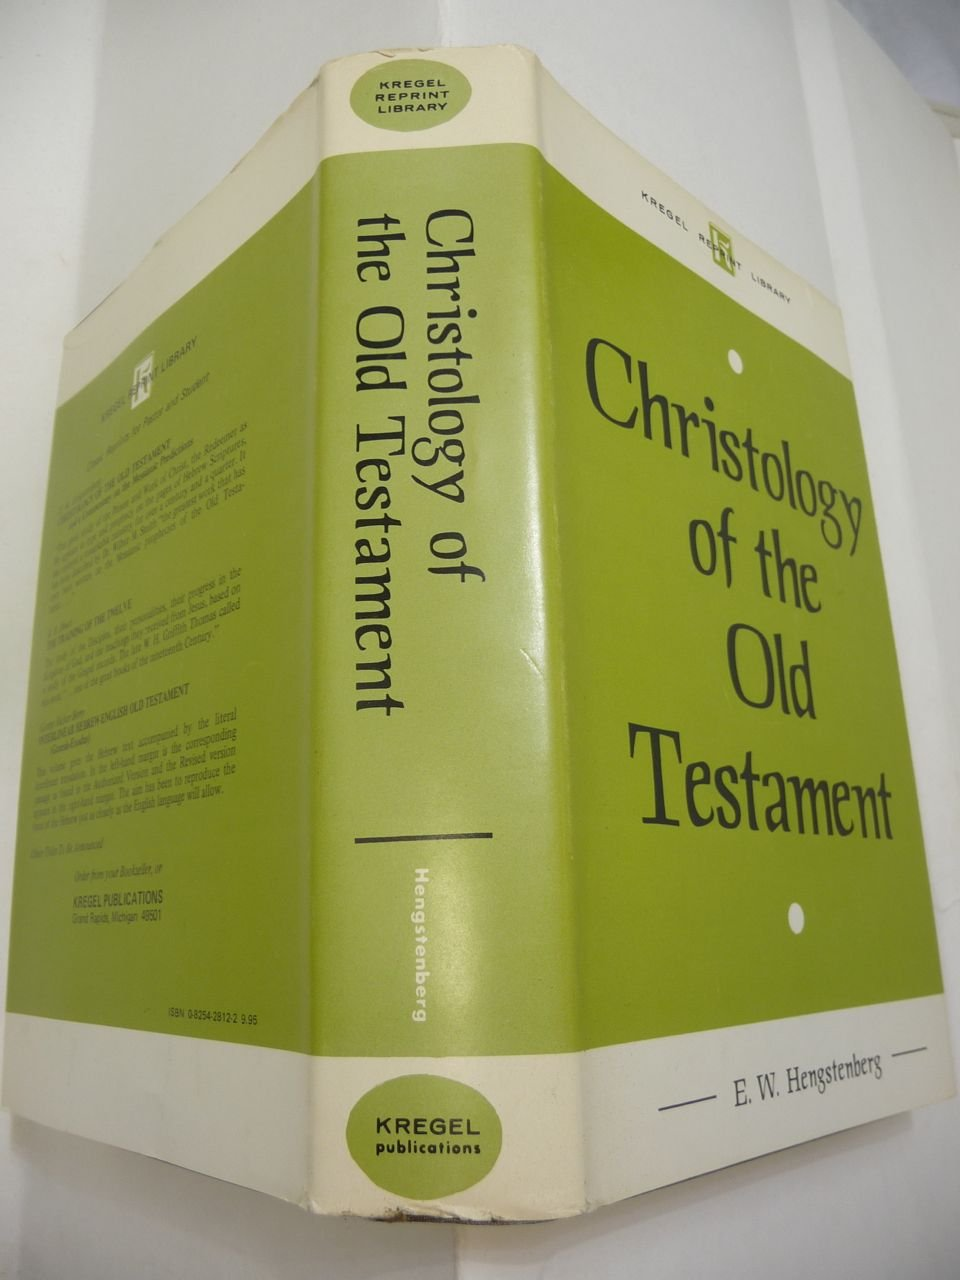 Read Online Christology of the Old Testament and A Commentary on the Messianic Predictions (Kregel Reprint Library) pdf